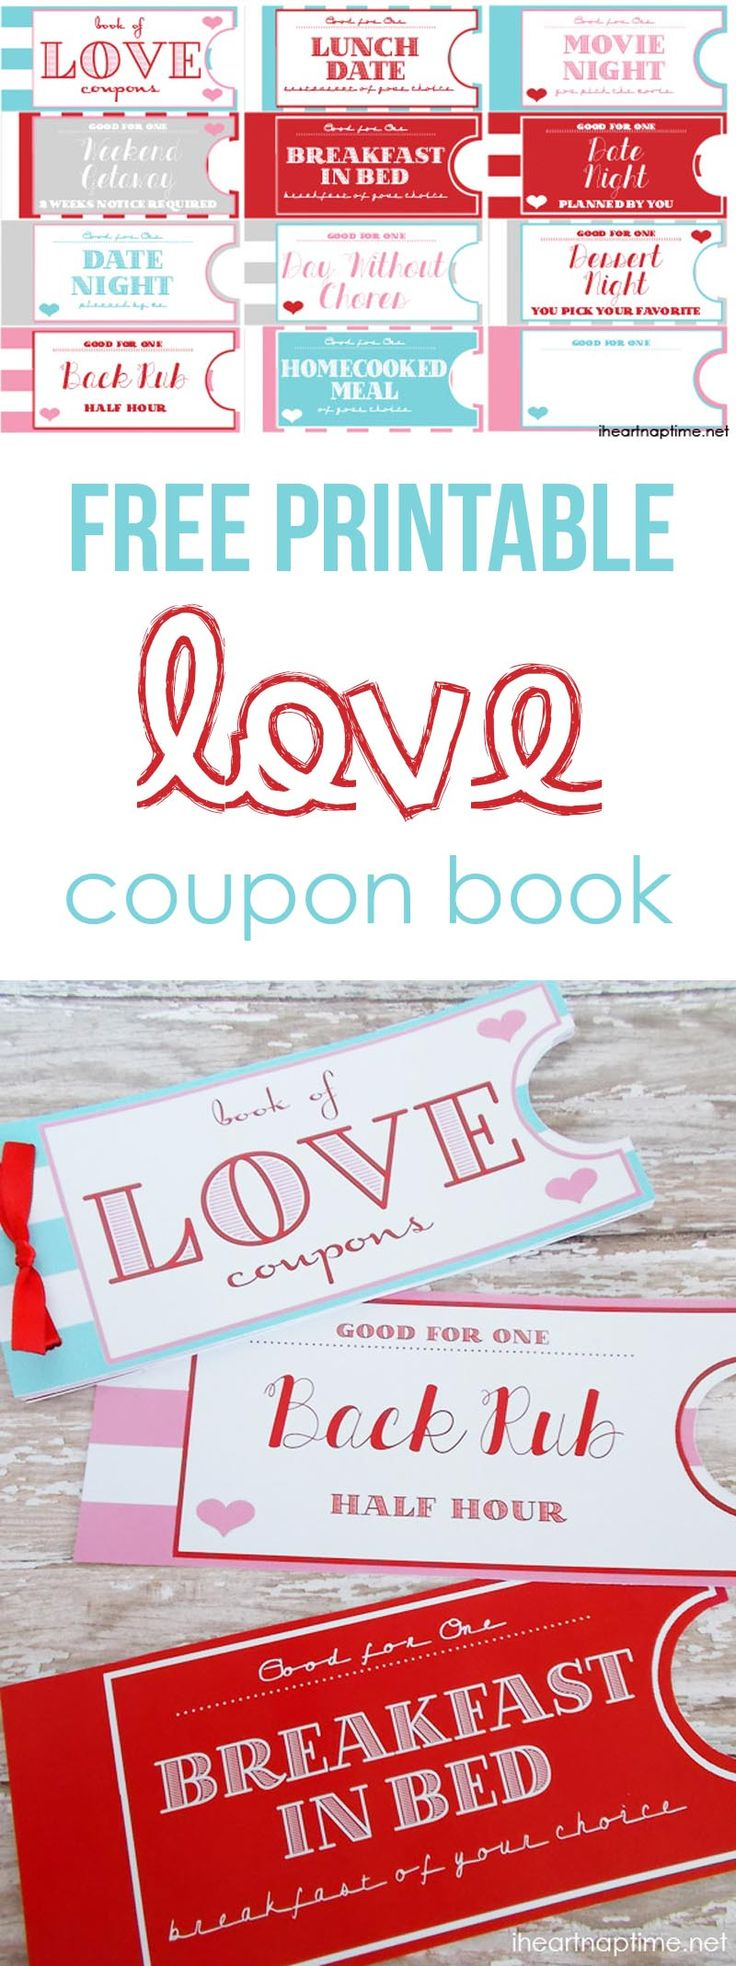 Free printable love coupon book on iheartnaptime.com ...such a fun and inexpensive gift idea!